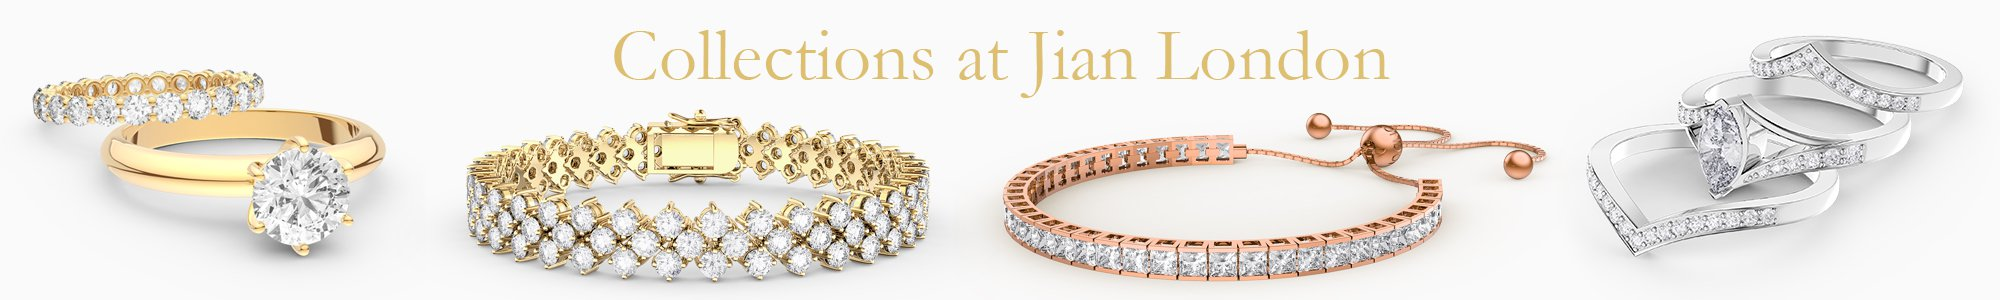 Jewellery Collections for everyone - from precious gemstones to Diamonds. From Silver to 18ct Gold.